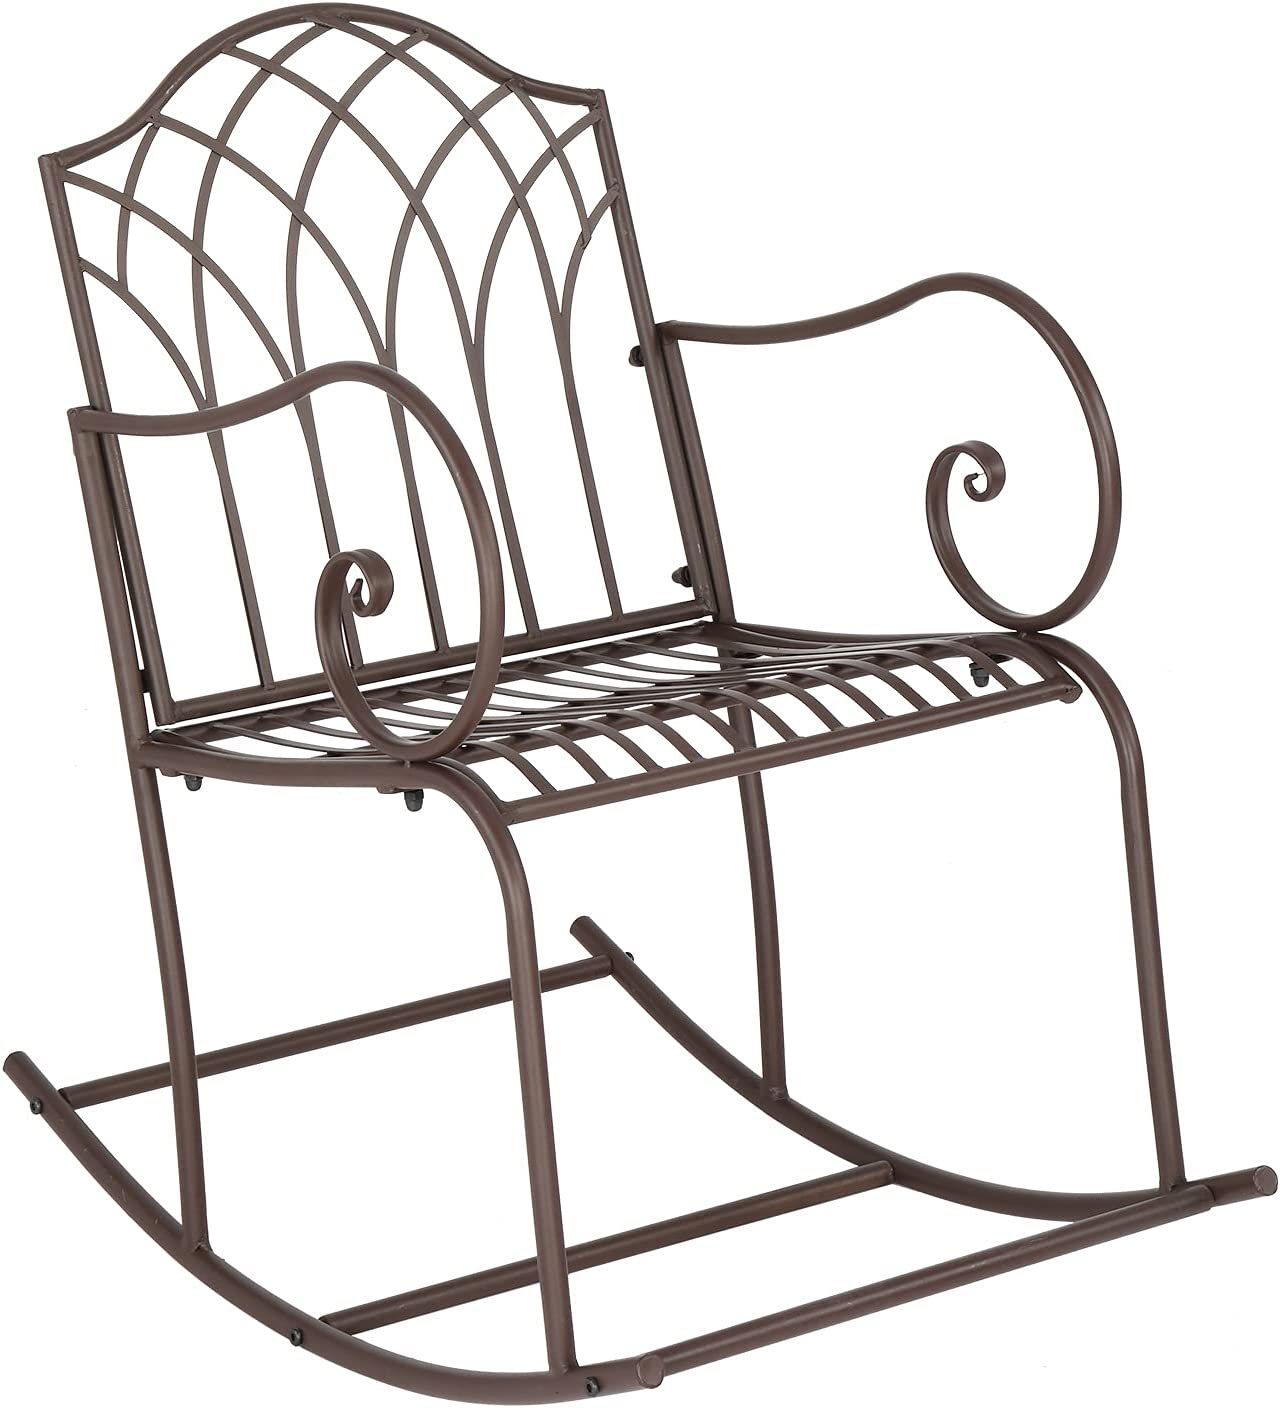 Save money GANGBAOBEI Iron Rocking Chair Outdoor Patio Rock Chairs Direct sale of manufacturer